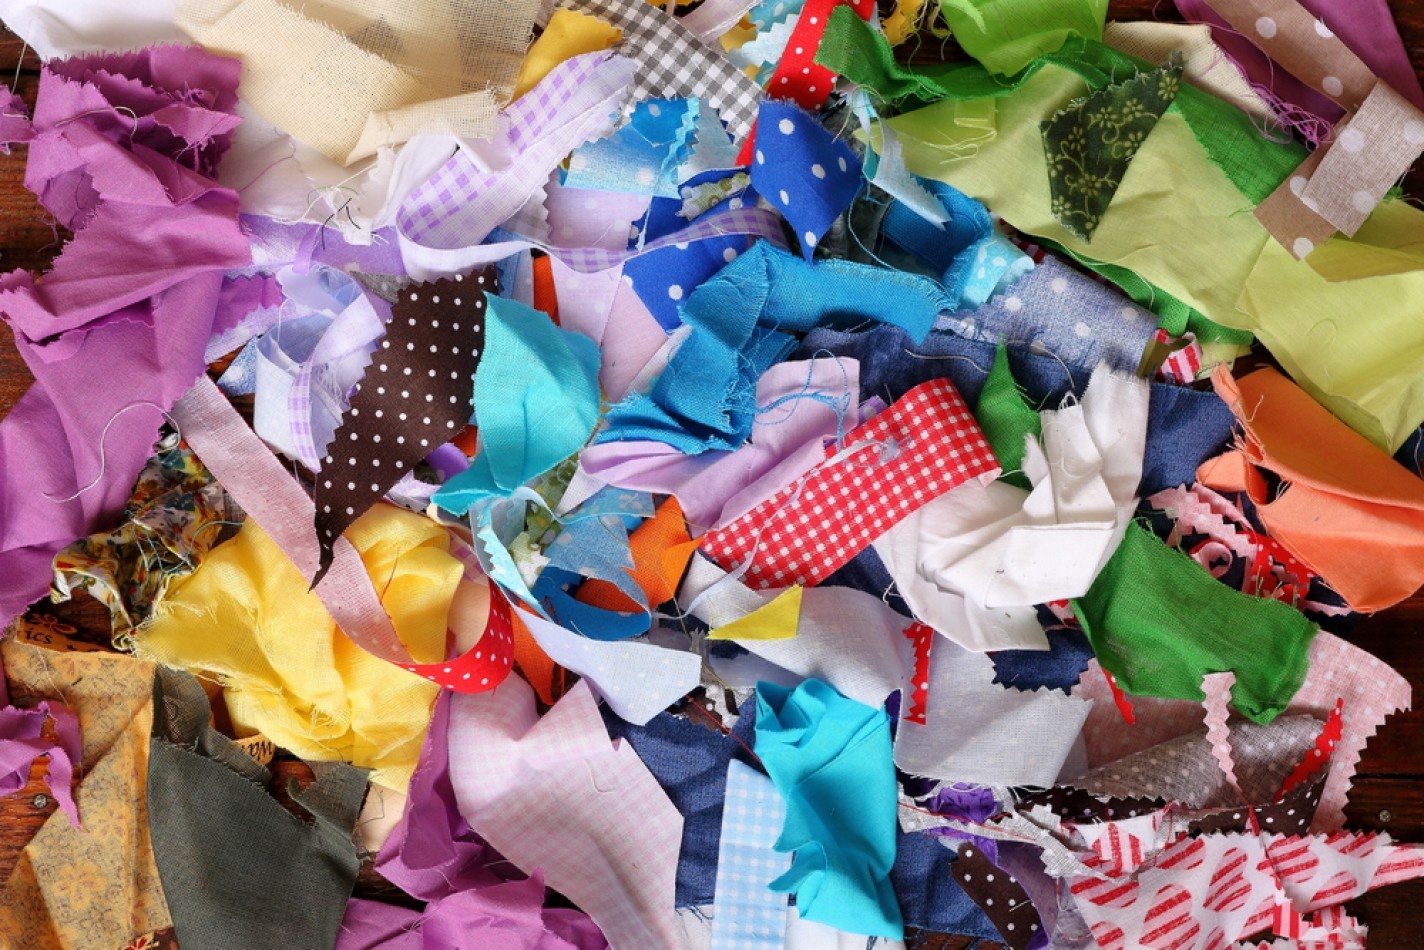 How Can Textile and Garments Industry Reduce Environmental Impact